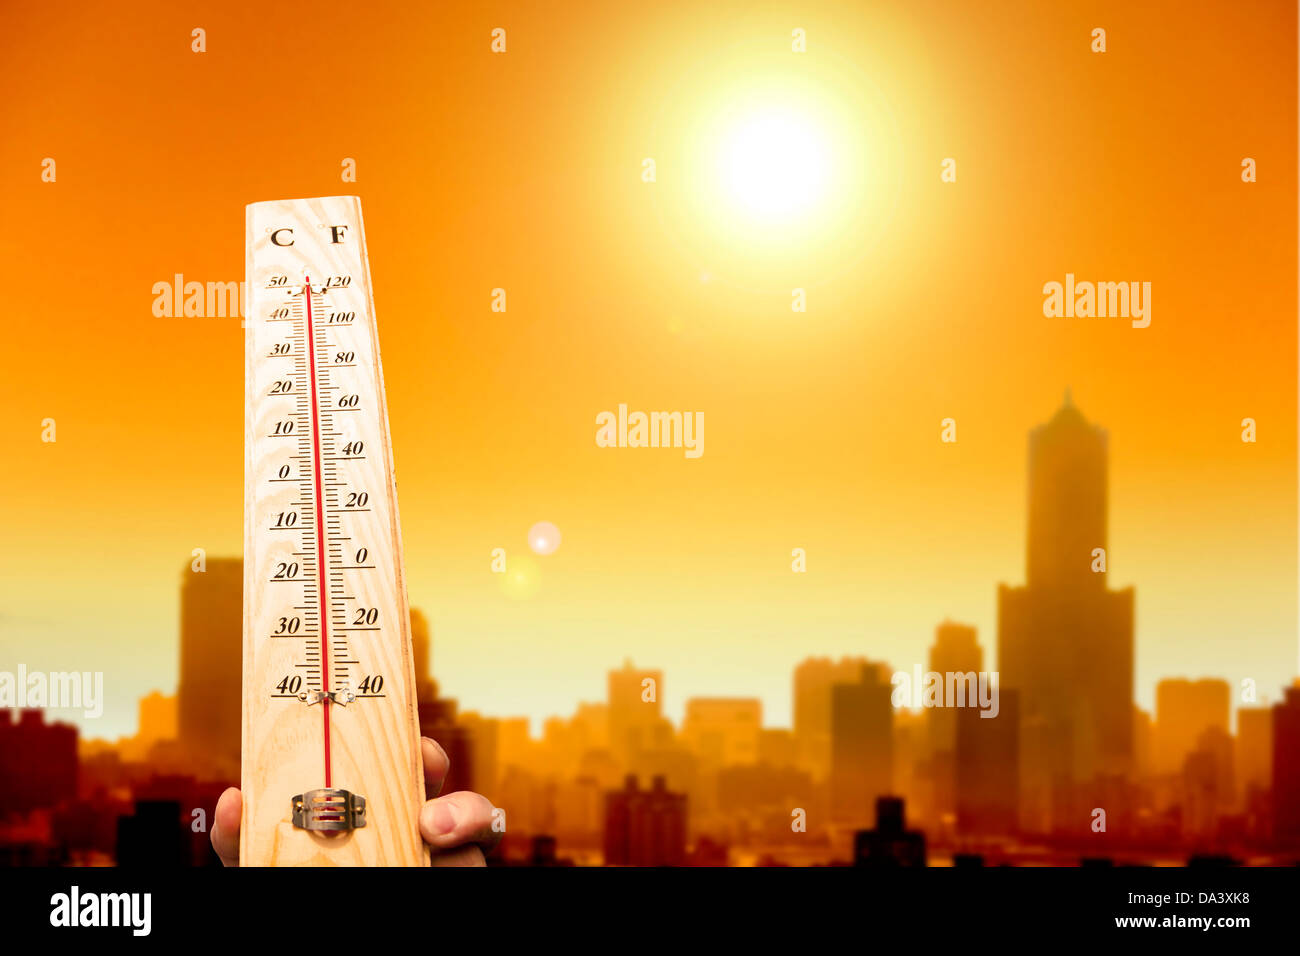 heat wave in the city and hand showing thermometer for high temperature Stock Photo